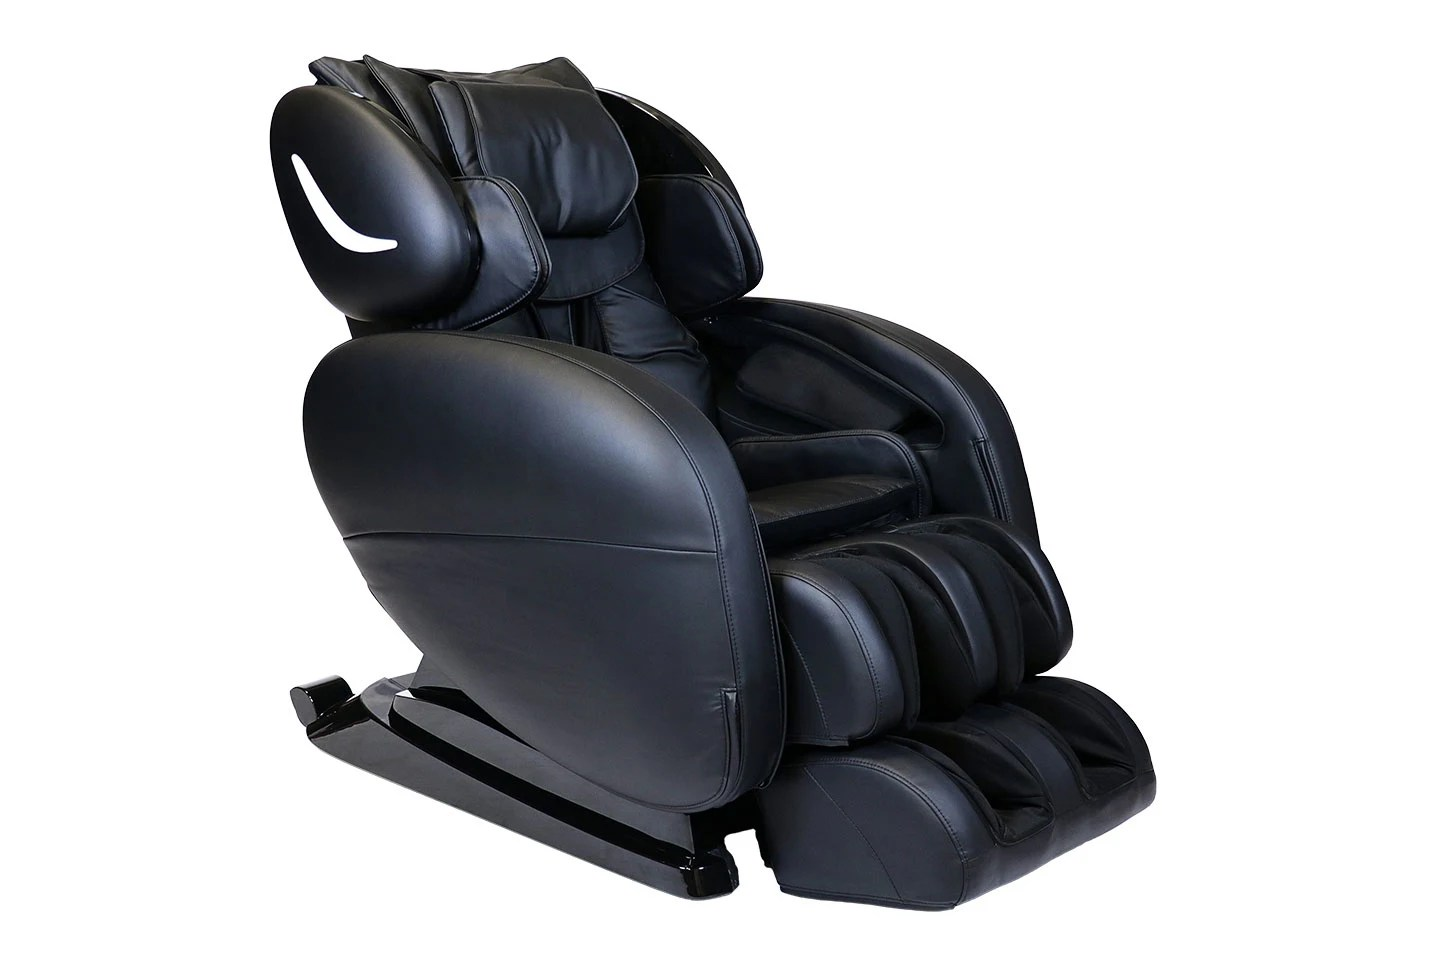 used vending massage chairs for sale bean bag storage chair smart x3 infinity